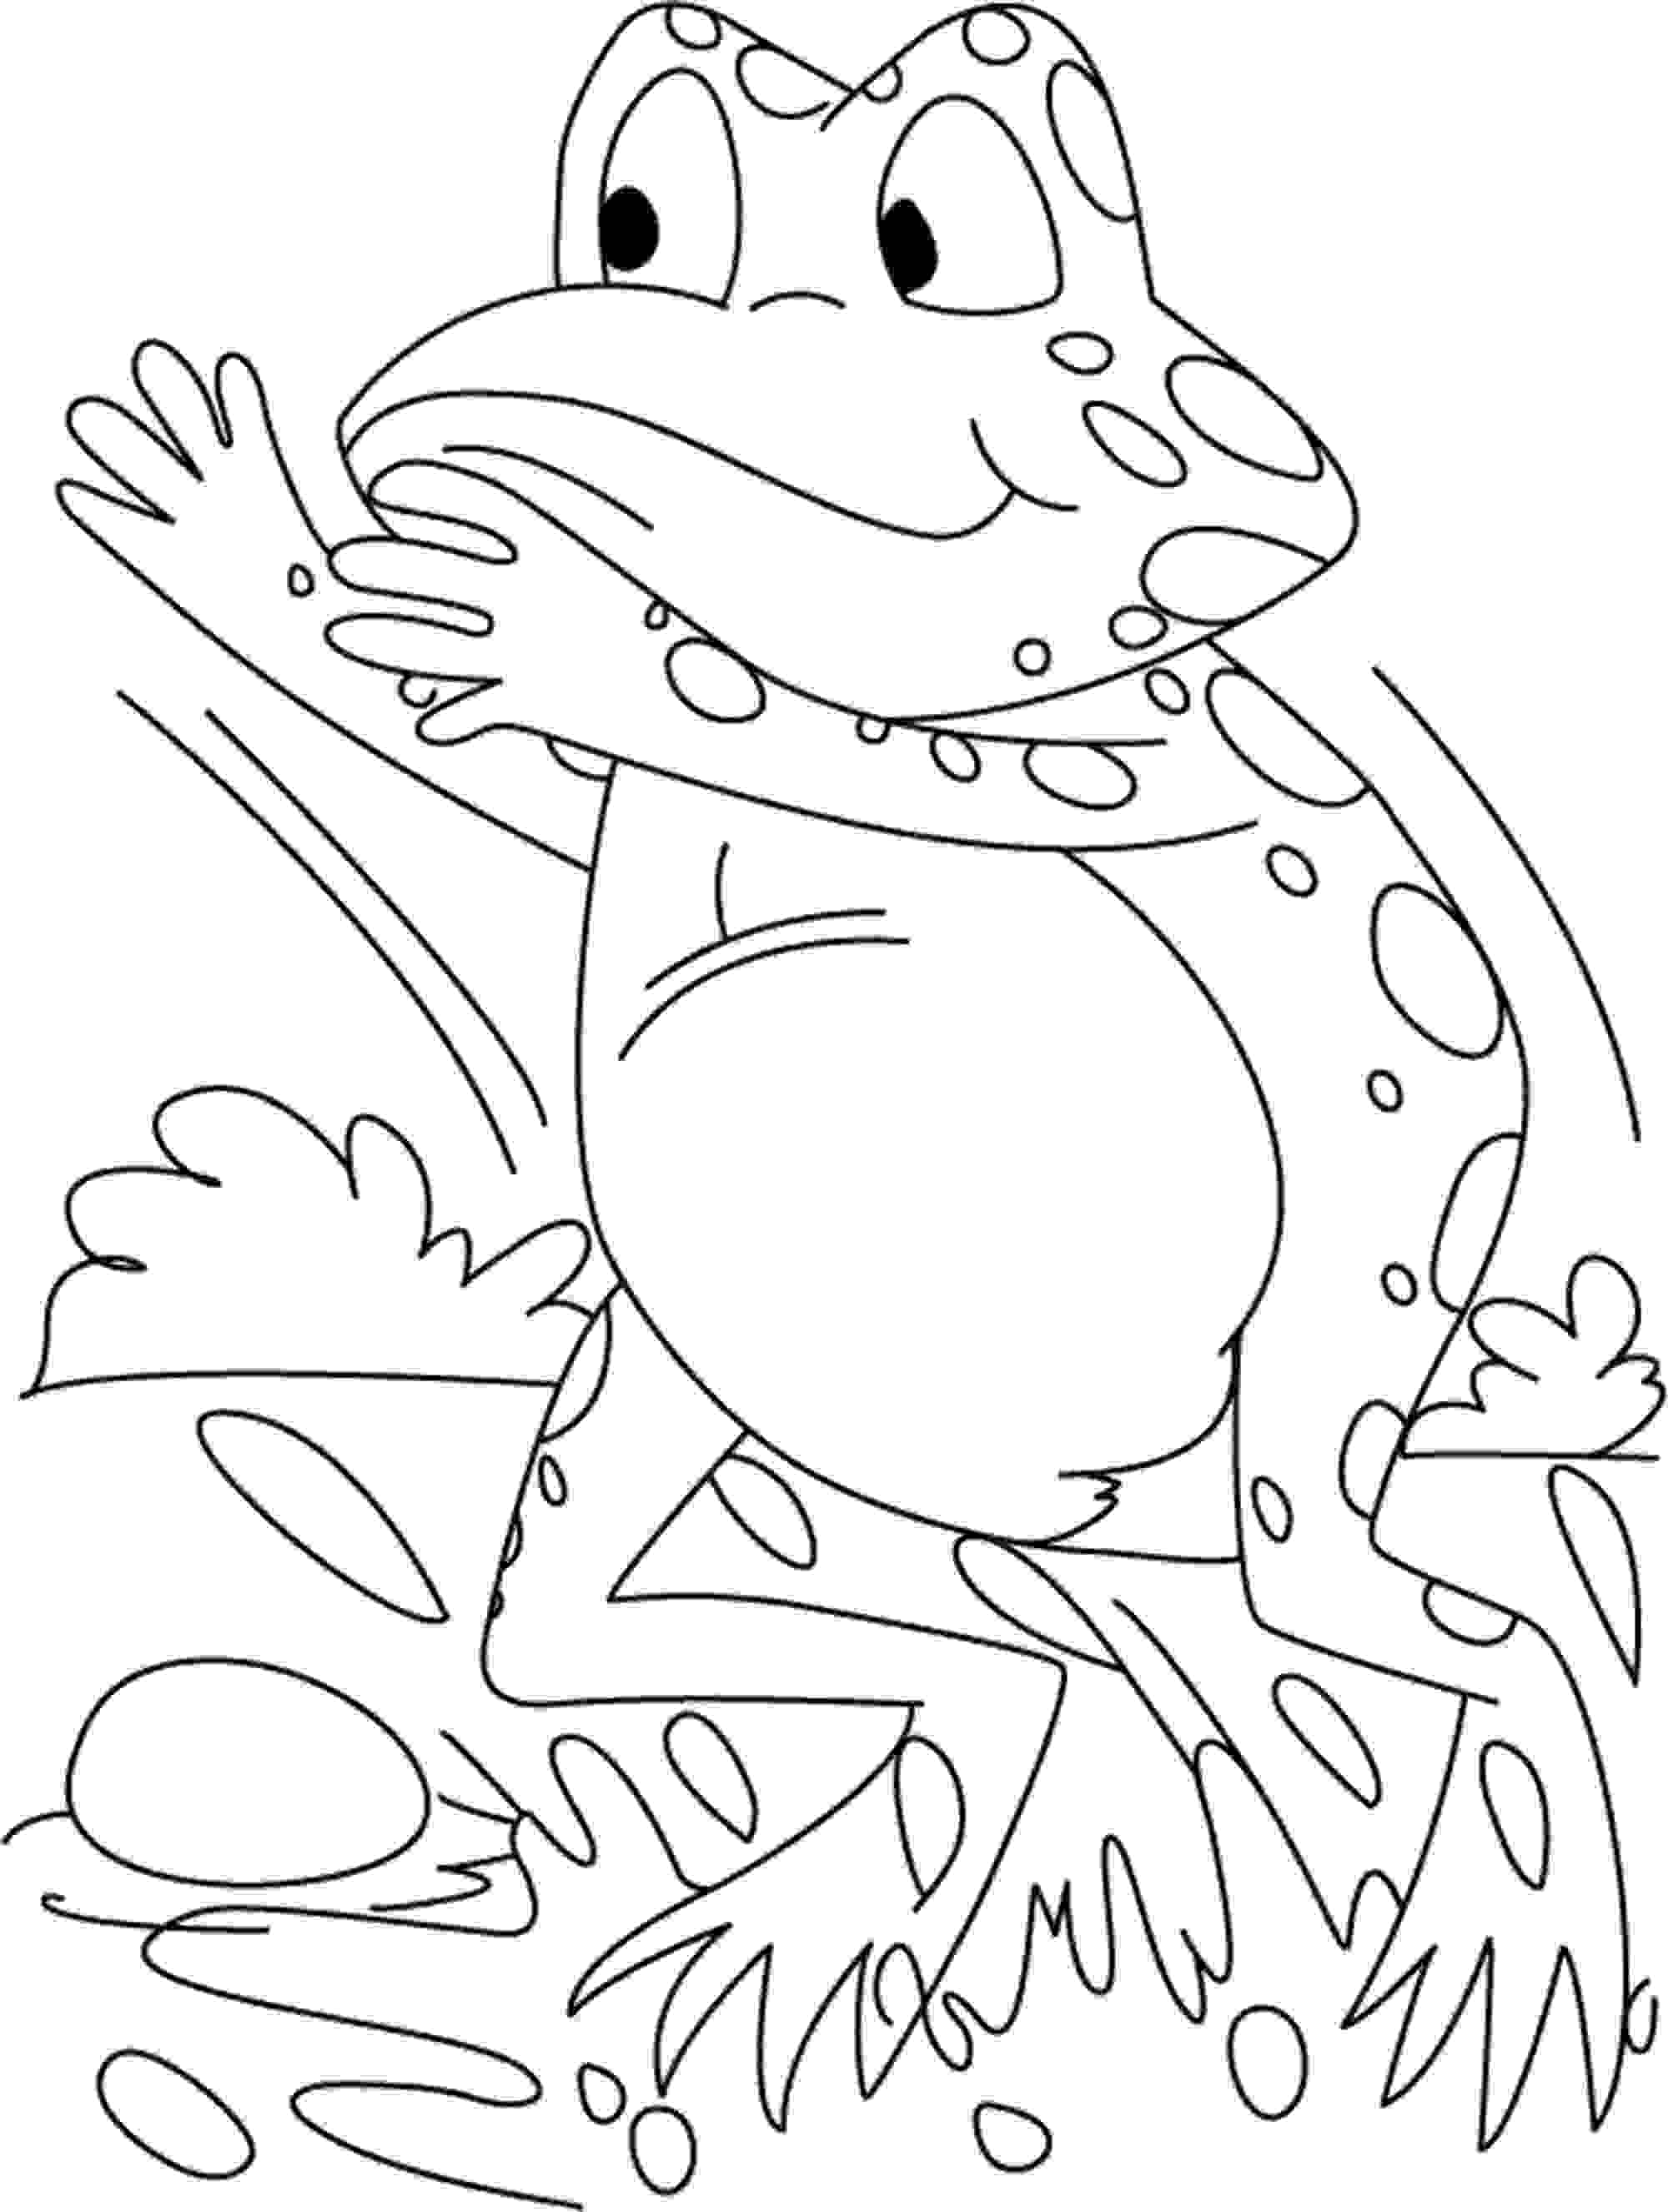 coloring images of frog free frog coloring page it39s a prince baby of frog images coloring